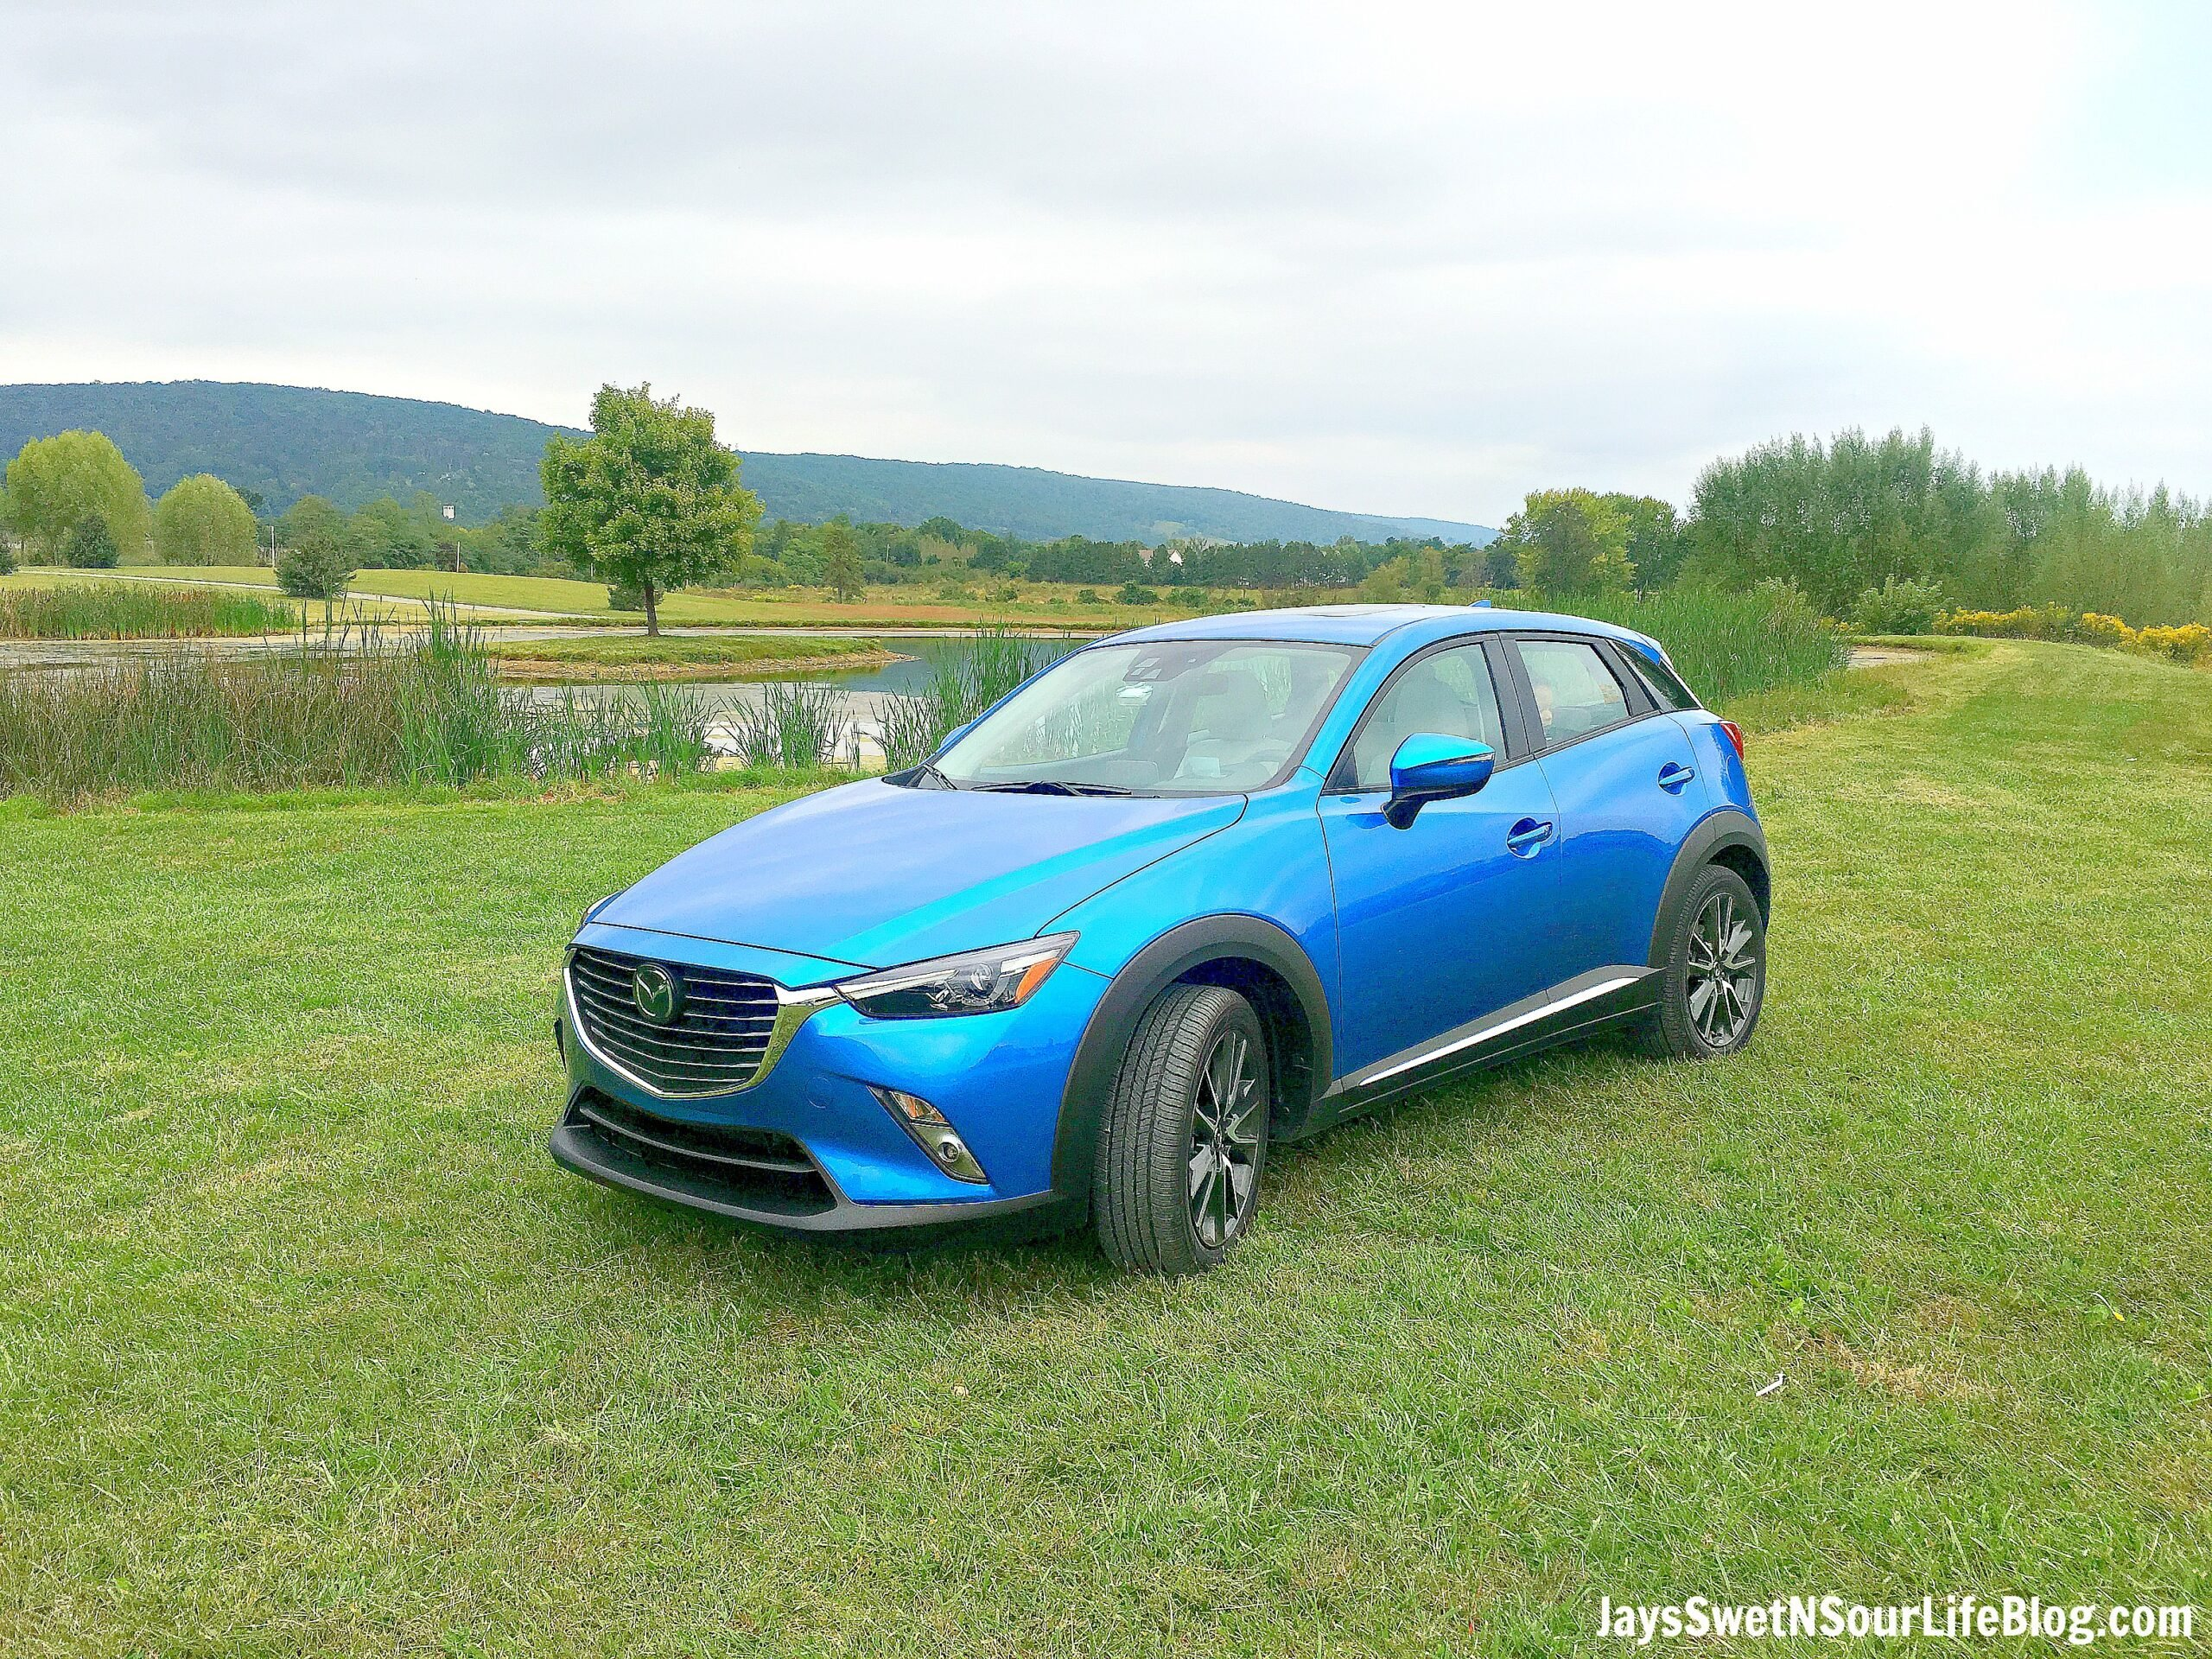 The new fuel-efficient Mazda SUV comes fully loaded with the latest high-tech features. Read 10 Reasons Why I Love The 2017 Mazda CX-3 Grand Touring AWD, and how we cruised around the Virginia Country Side in this sleek fuel-efficient SUV.